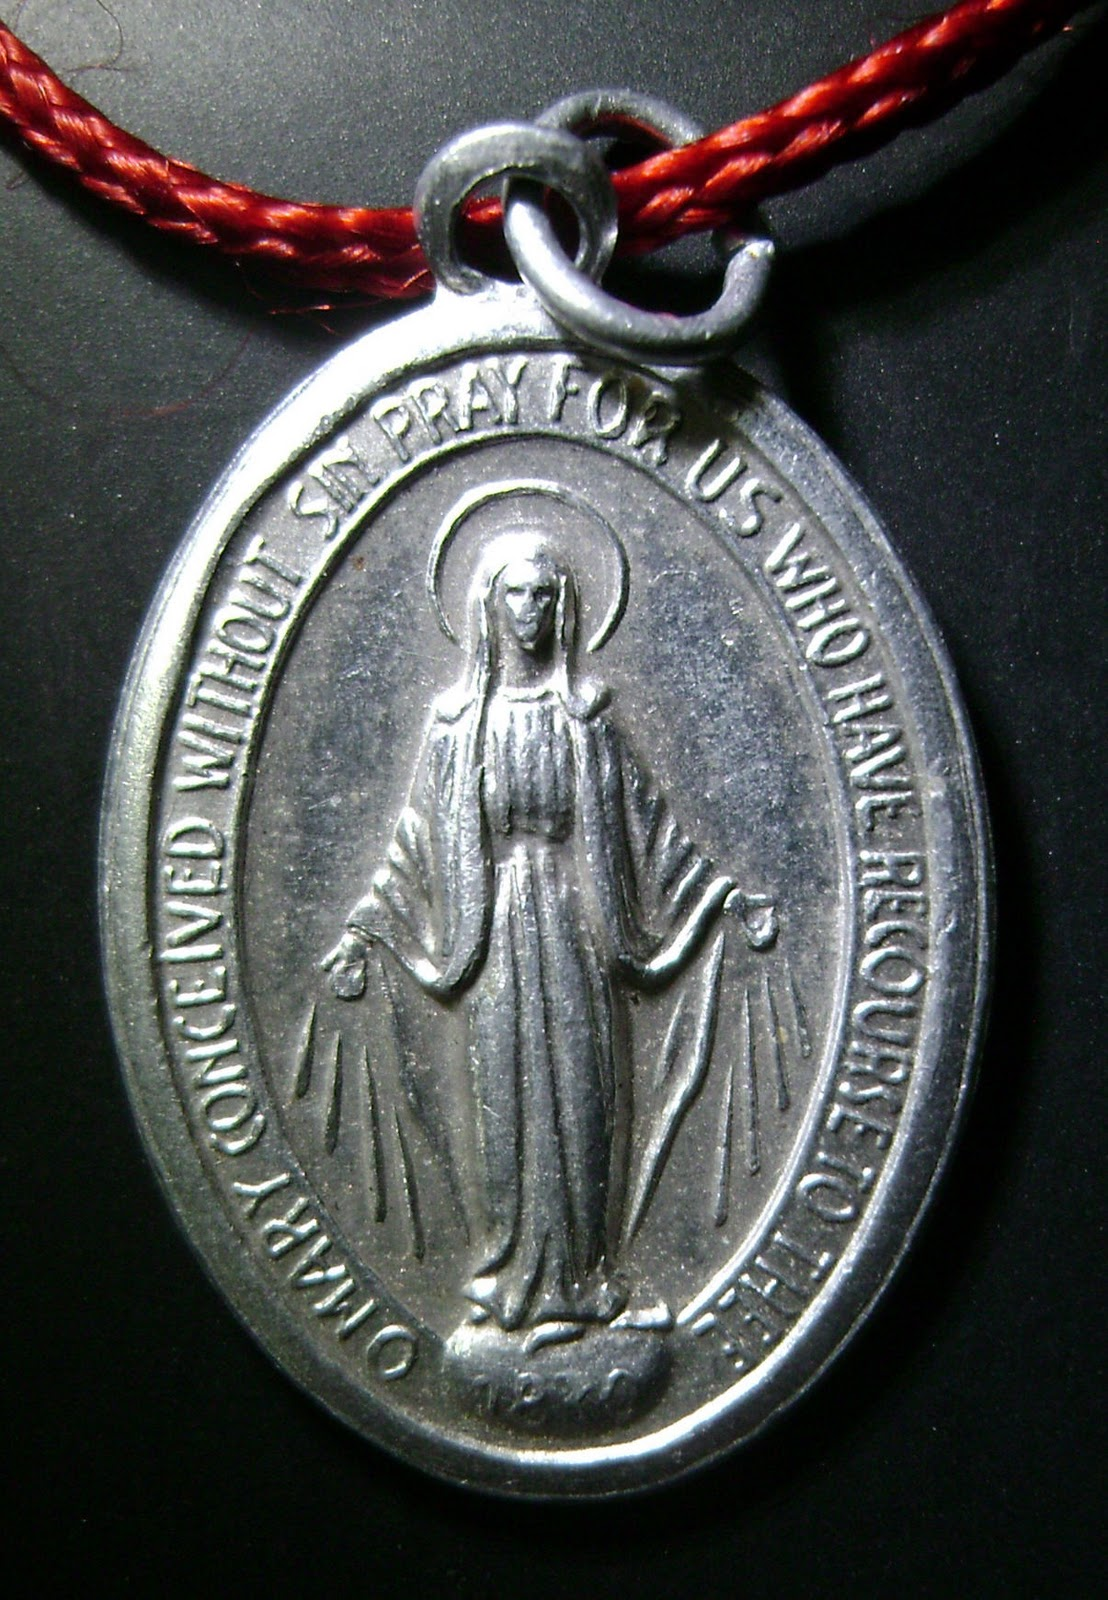 Just writing 2011 she next gave each of us a vatican dollar of mother mary which i wear today as a symbol of protection and guidance biocorpaavc Image collections